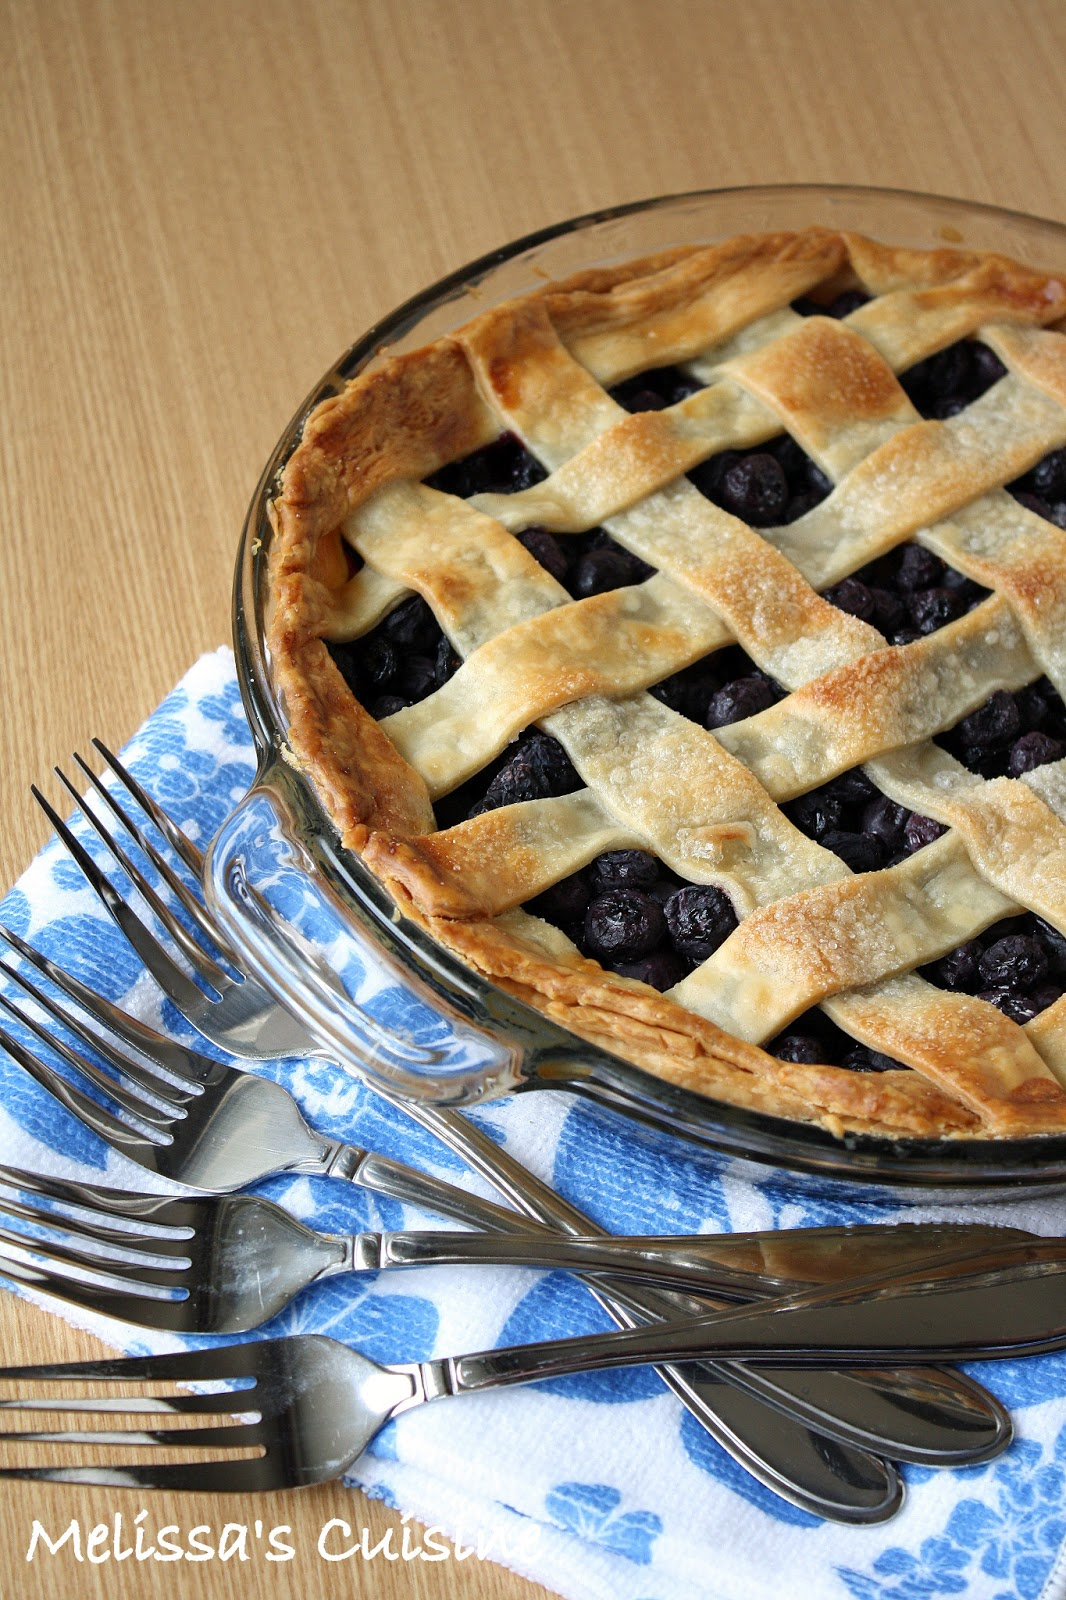 Melissa's Cuisine: Blueberry Pie